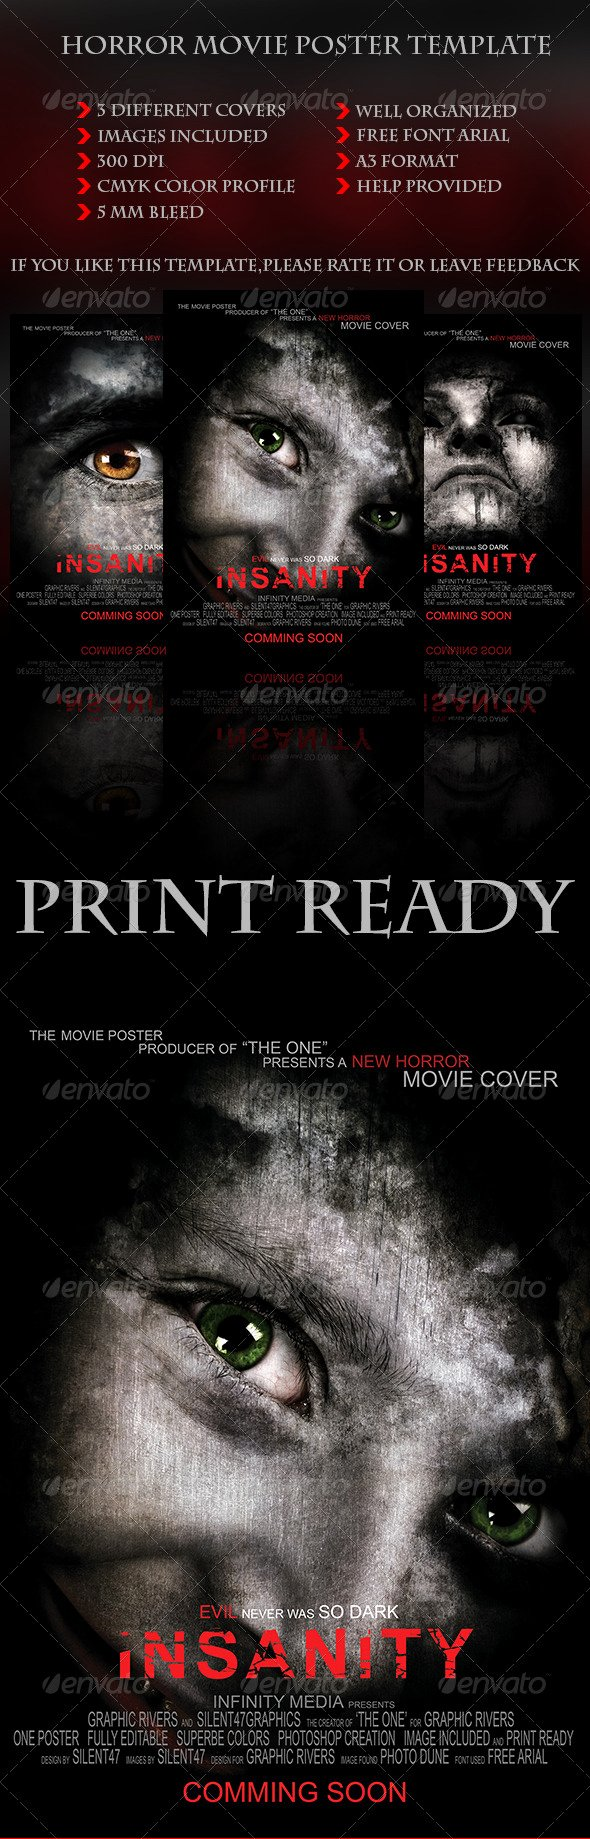 Horror Movie Poster Template Inspirational Horror Movie Poster Template by Silentgraphics